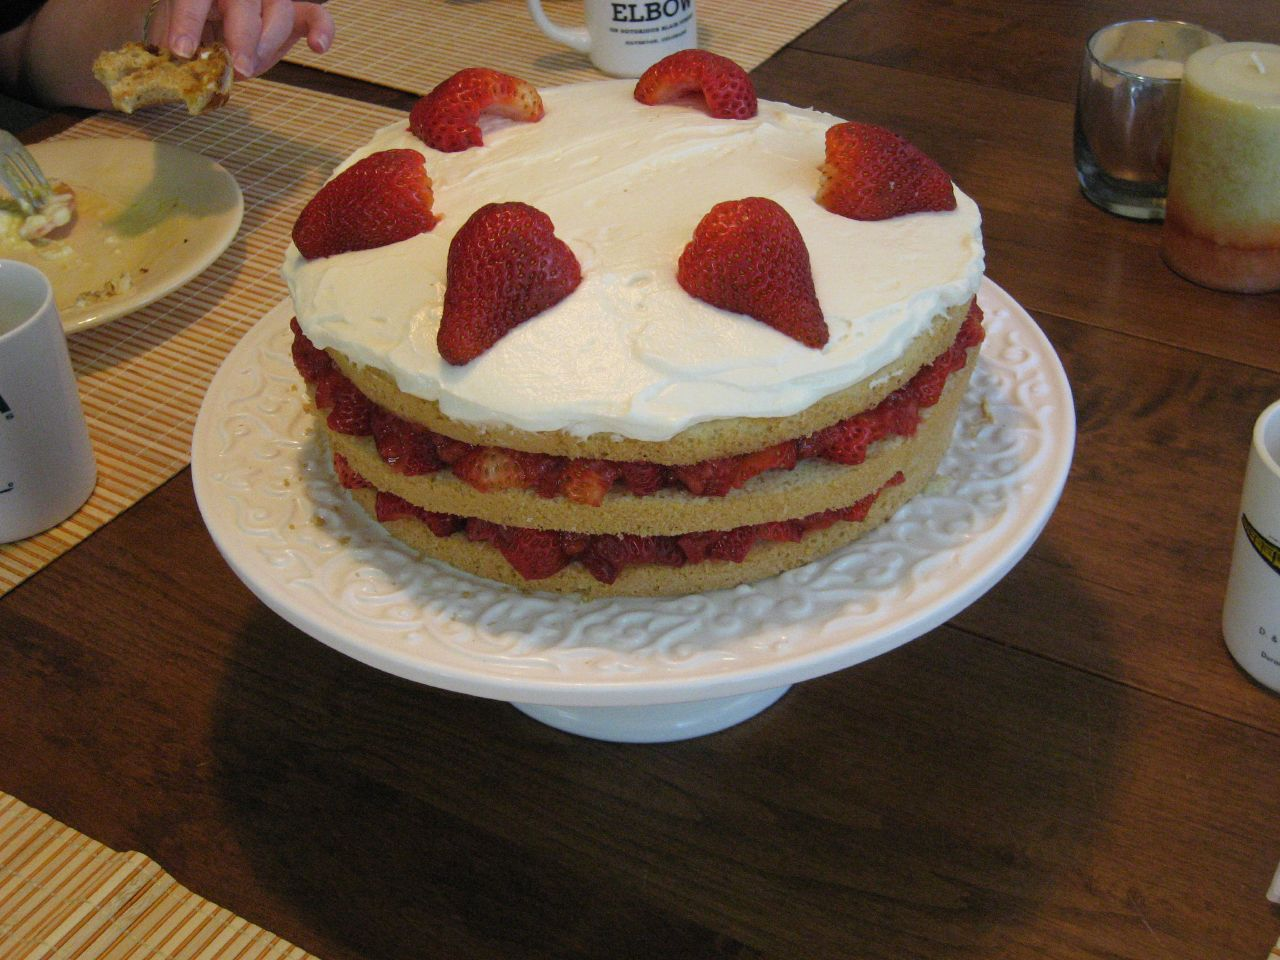 https://upload.wikimedia.org/wikipedia/commons/3/37/Strawberry_Cream_Cake.jpg